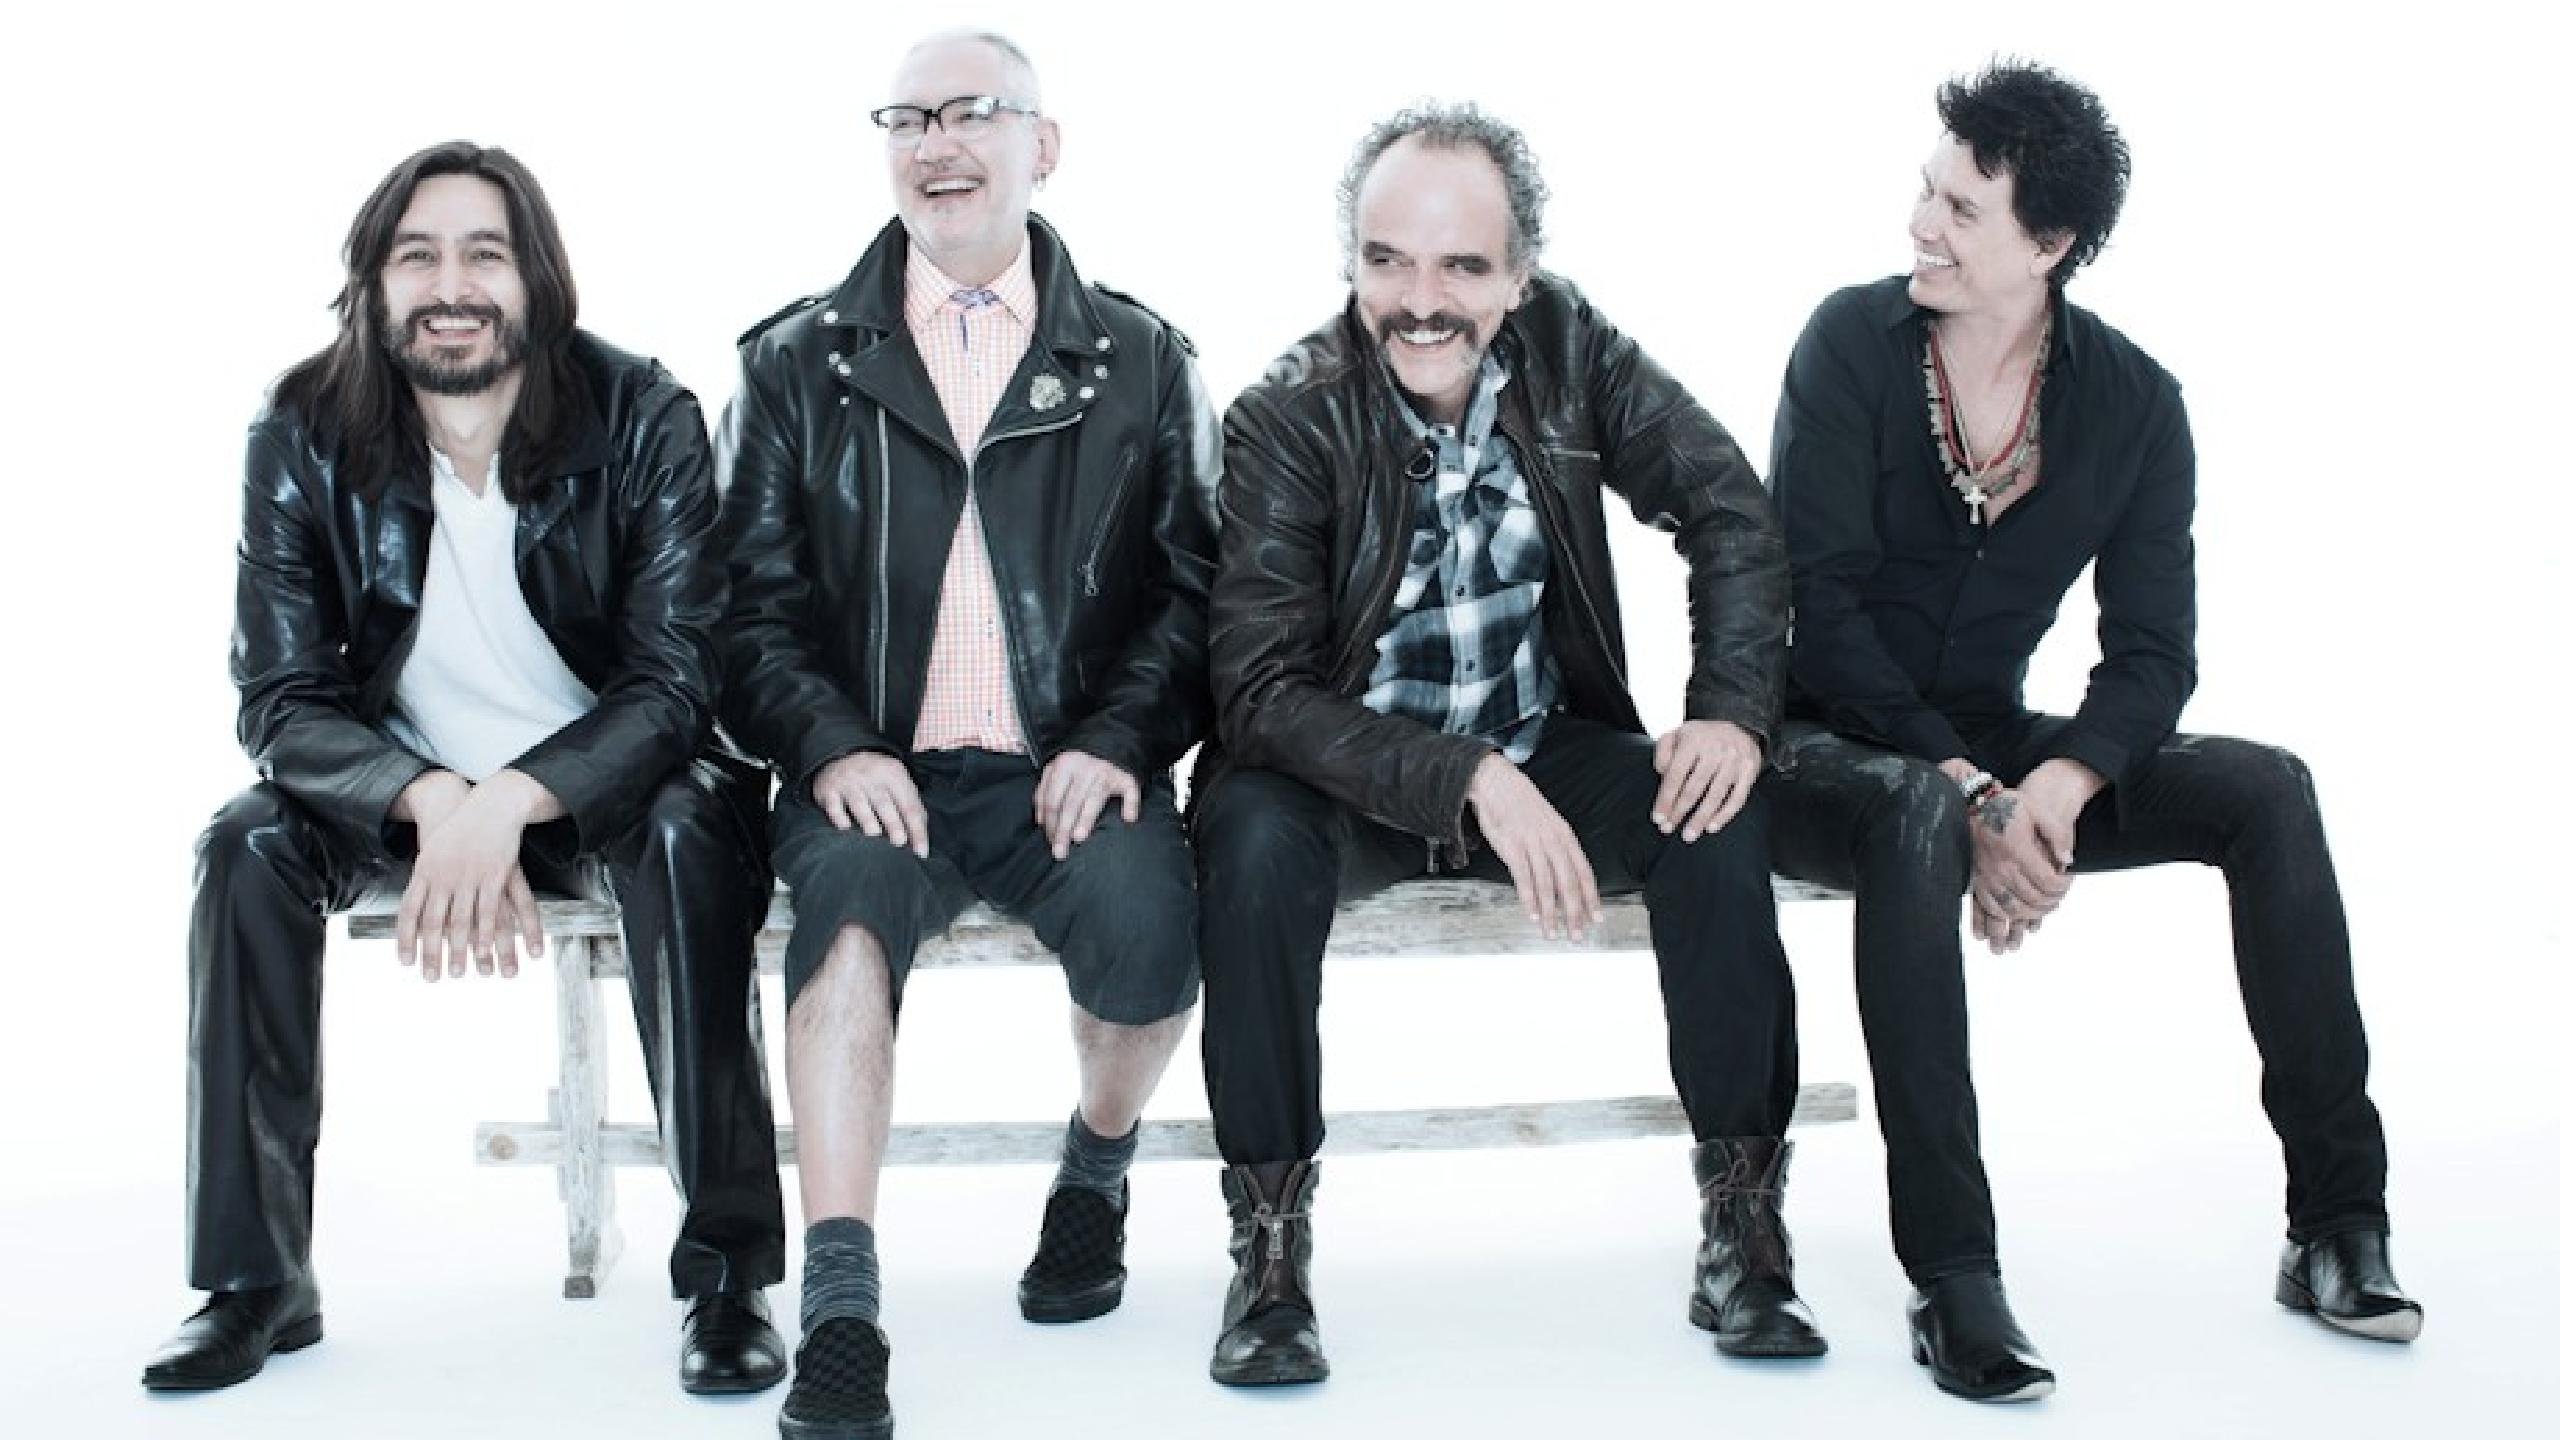 Caifanes Tour 2020 Caifanes tour dates 2019 2020. Caifanes tickets and concerts